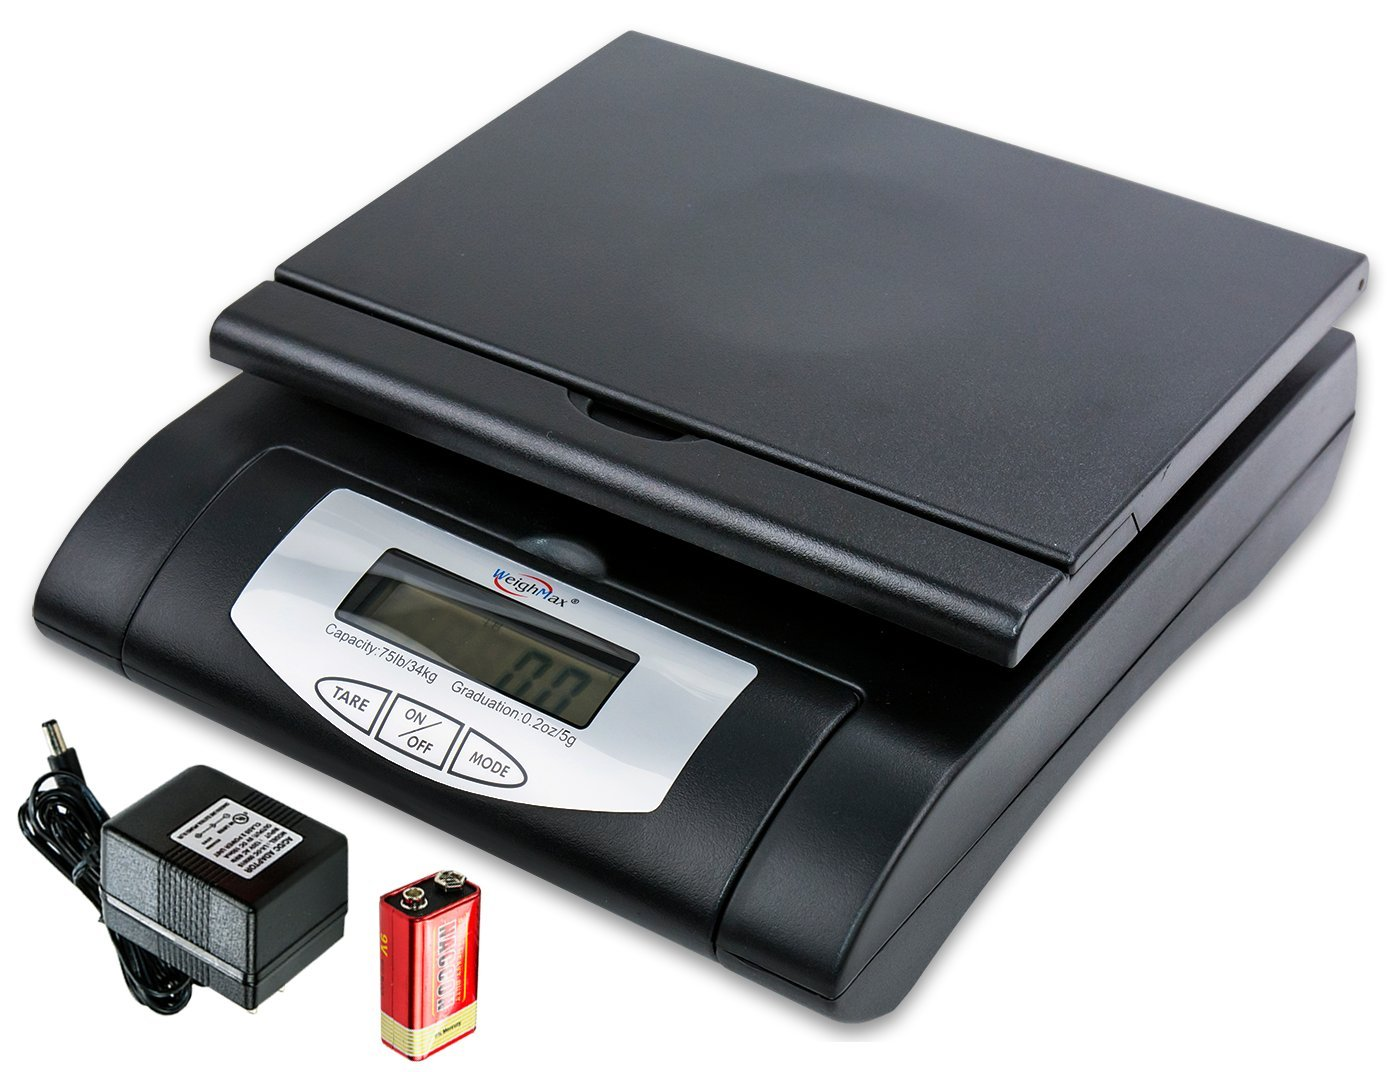 Weighmax 75 lbs. Digital Shipping Postal Scale, Black (W-4819-75 Black) by Weighmax